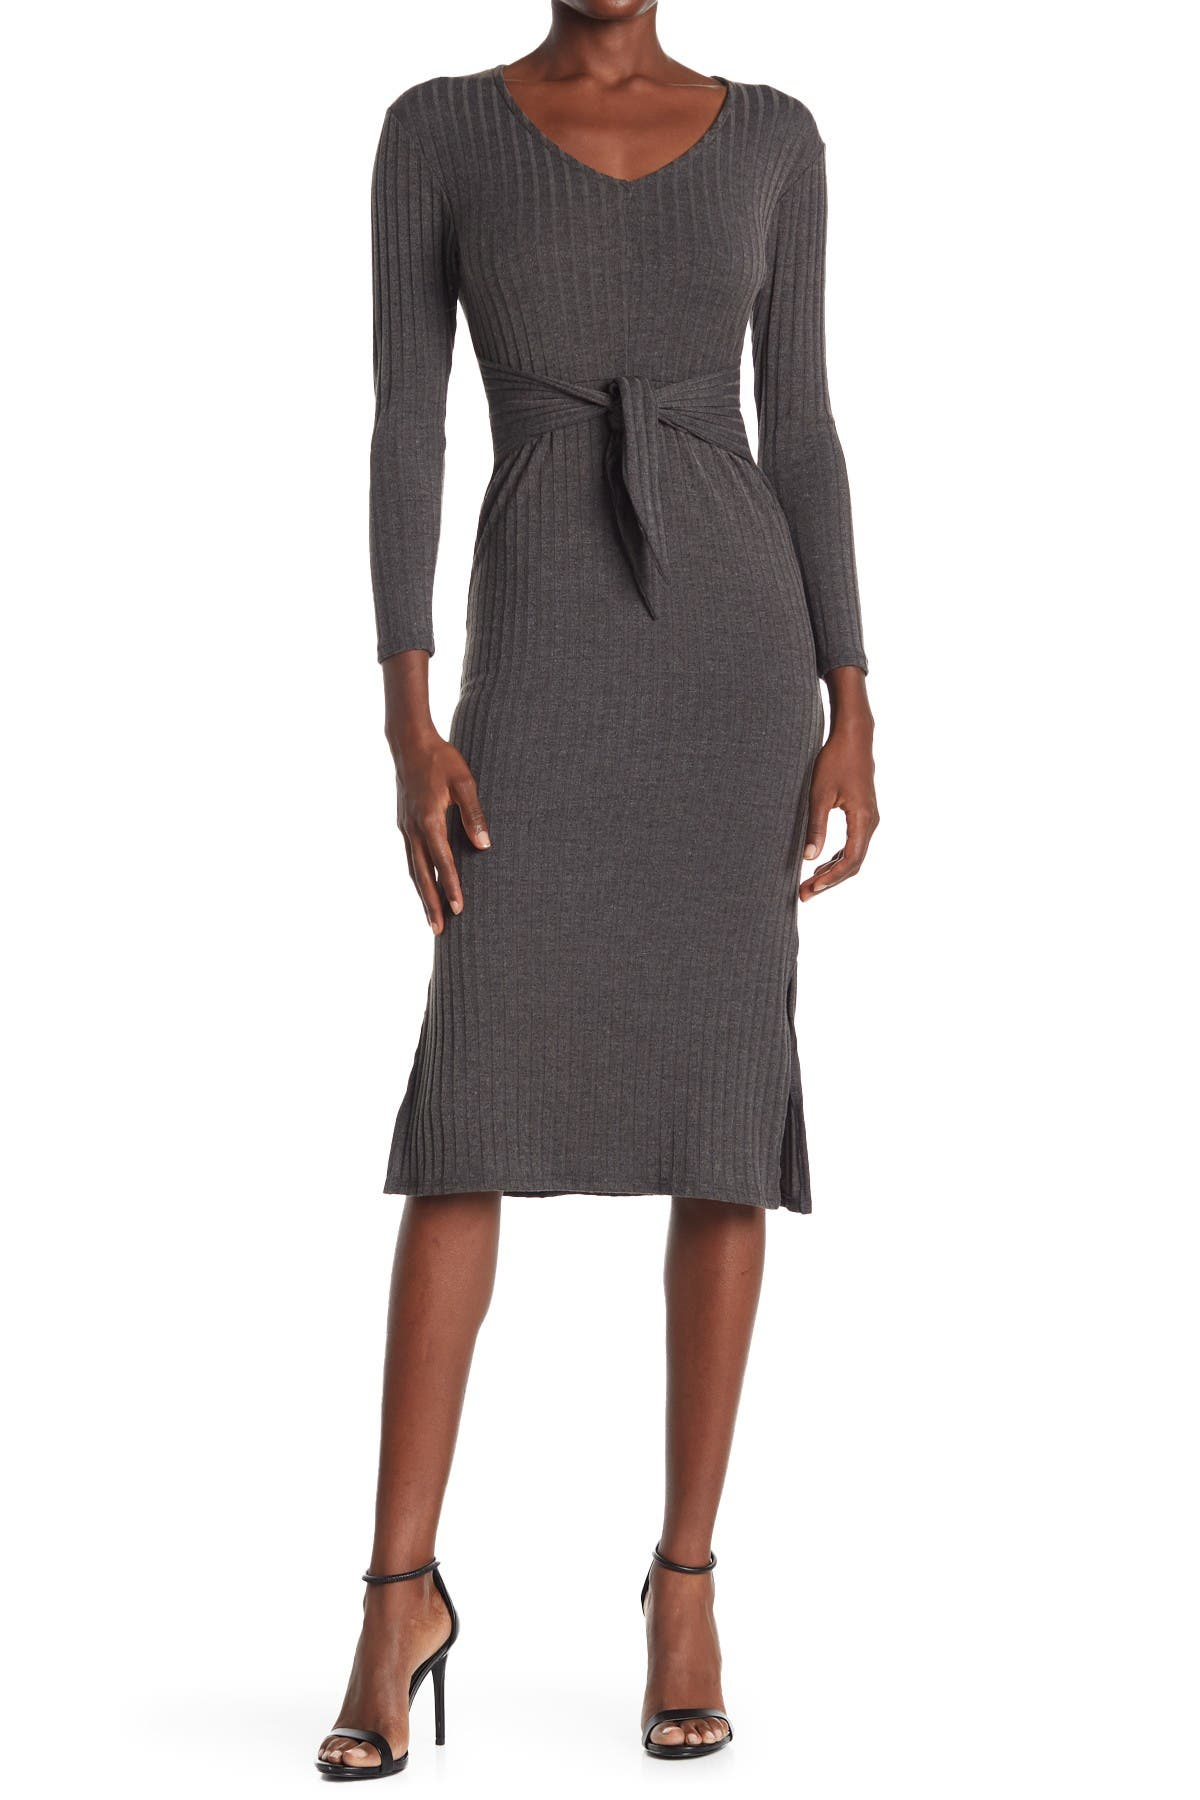 Image of Velvet Torch Long Sleeve Tie Front Ribbed Knit Midi Dress